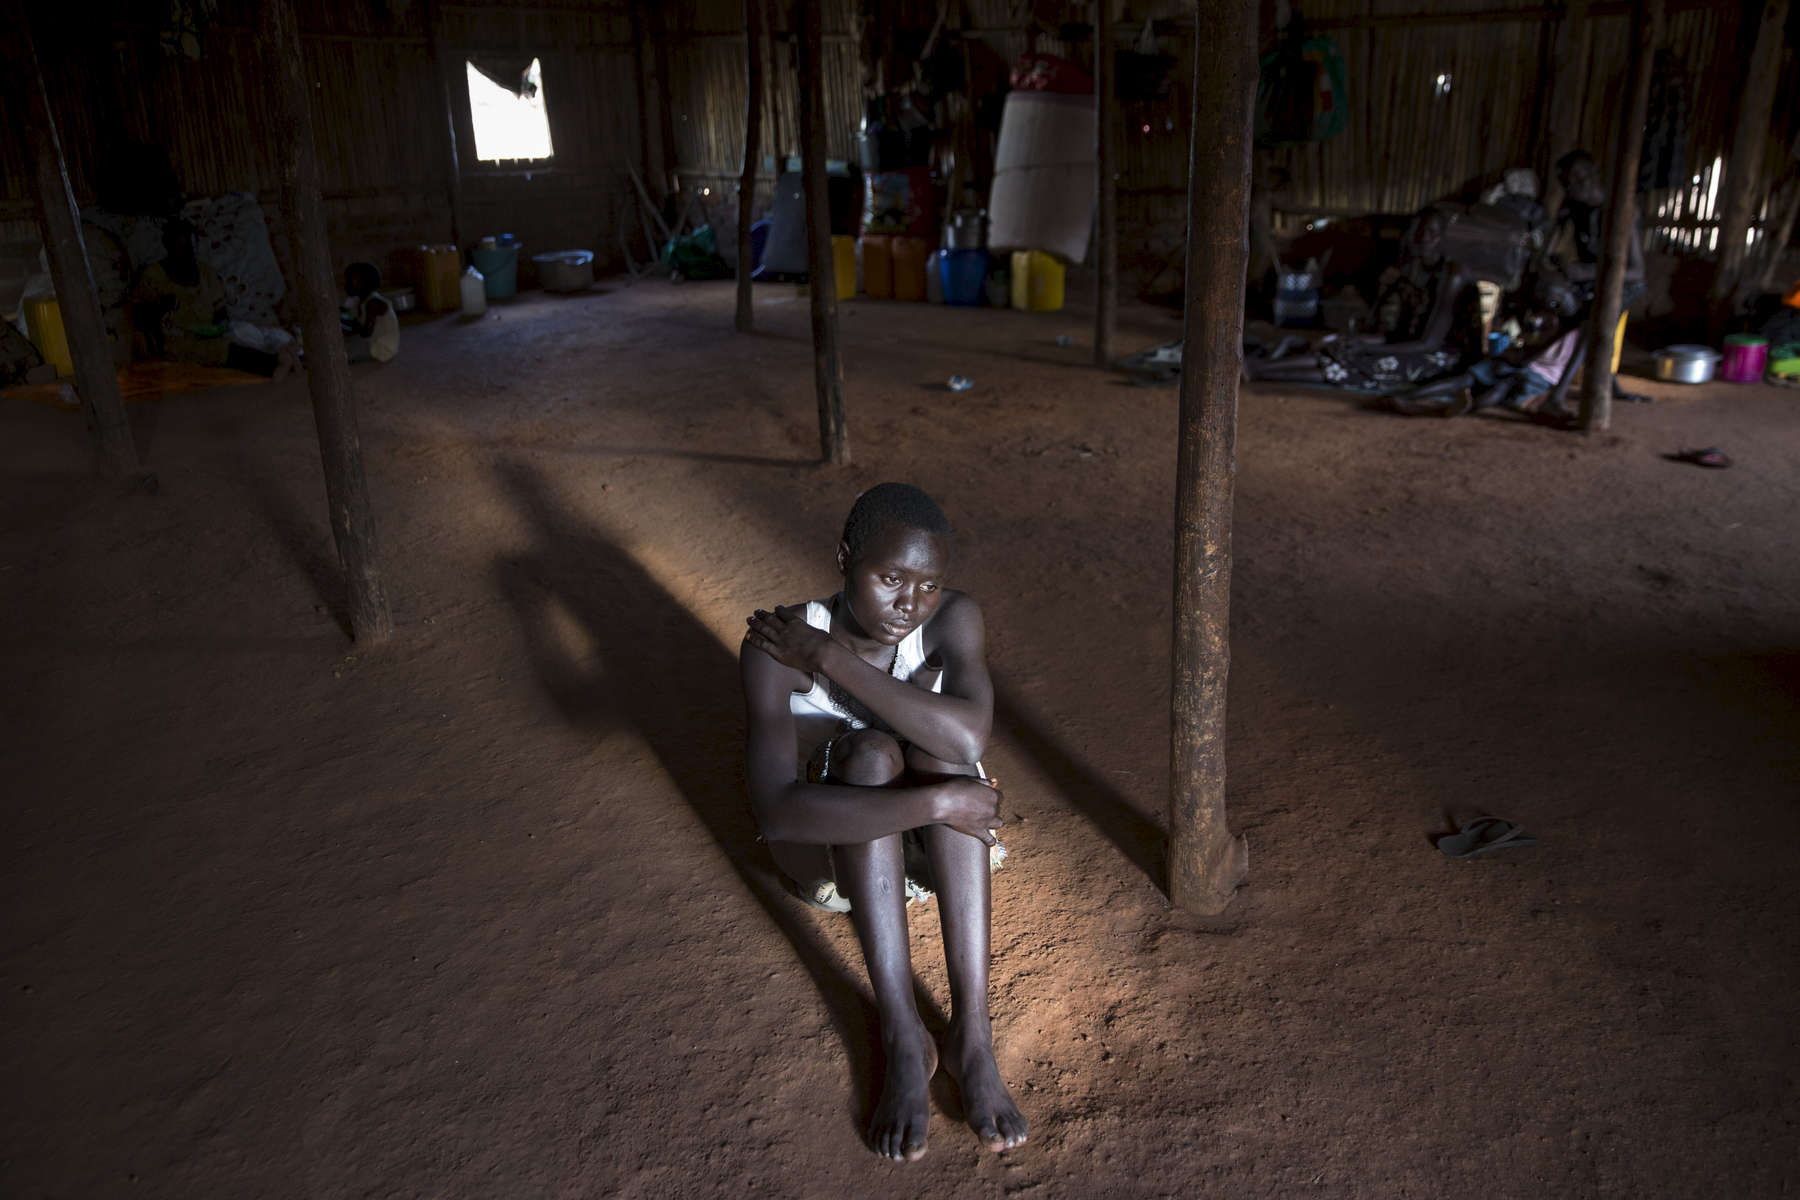 ADJUMANI DISTRICT-UGANDA: At the Nyumanzi transit camp Esther Ababiku, 16, is one of the many girls who lost her parents, forced to flee on her own unaccompanied and vulnerable to sexual attacks. She lives with other teens who are also orphans of the war. The Onward Struggle:  A refugee crisis in Uganda deepens as South Sudanese Refugees are forced to leave their country behind. The outbreak of violence in the capital Juba last July created a humanitarian crisis in northern Uganda as thousands of South Sudanese sought refugee there. The country is hosting the lion's share of South Sudanese refugees, with 373,626, more than a third of them arriving since early July.The fighting was a major setback to peace efforts in South Sudan, coming as the troubled new nation prepared to celebrate its fifth anniversary, amid a short lived peace deal between supporters of President Salva Kiir and former First Vice President Riek Machar. South Sudan now joins Syria, Afghanistan and Somalia as countries which have produced more than a million refugees. While some South Sudanese may attempt to head for Europe, the numbers within east Africa are comparable in scale to recent refugee flows to Europe from the Middle East, and their traumatic experiences due to war are often just as hellish. More than 85 percent of the refugees in this recent influx are women and children. Many children have lost one or both of their parents, some forced to become primary caregivers to siblings.With the large influx of refugees in July 2015, relief agencies had to implement stringent food rationing in the refugee settlements. Currently the international humanitarian organizations lack the necessary funds to meet the needs of the more than 200,000 refugees.